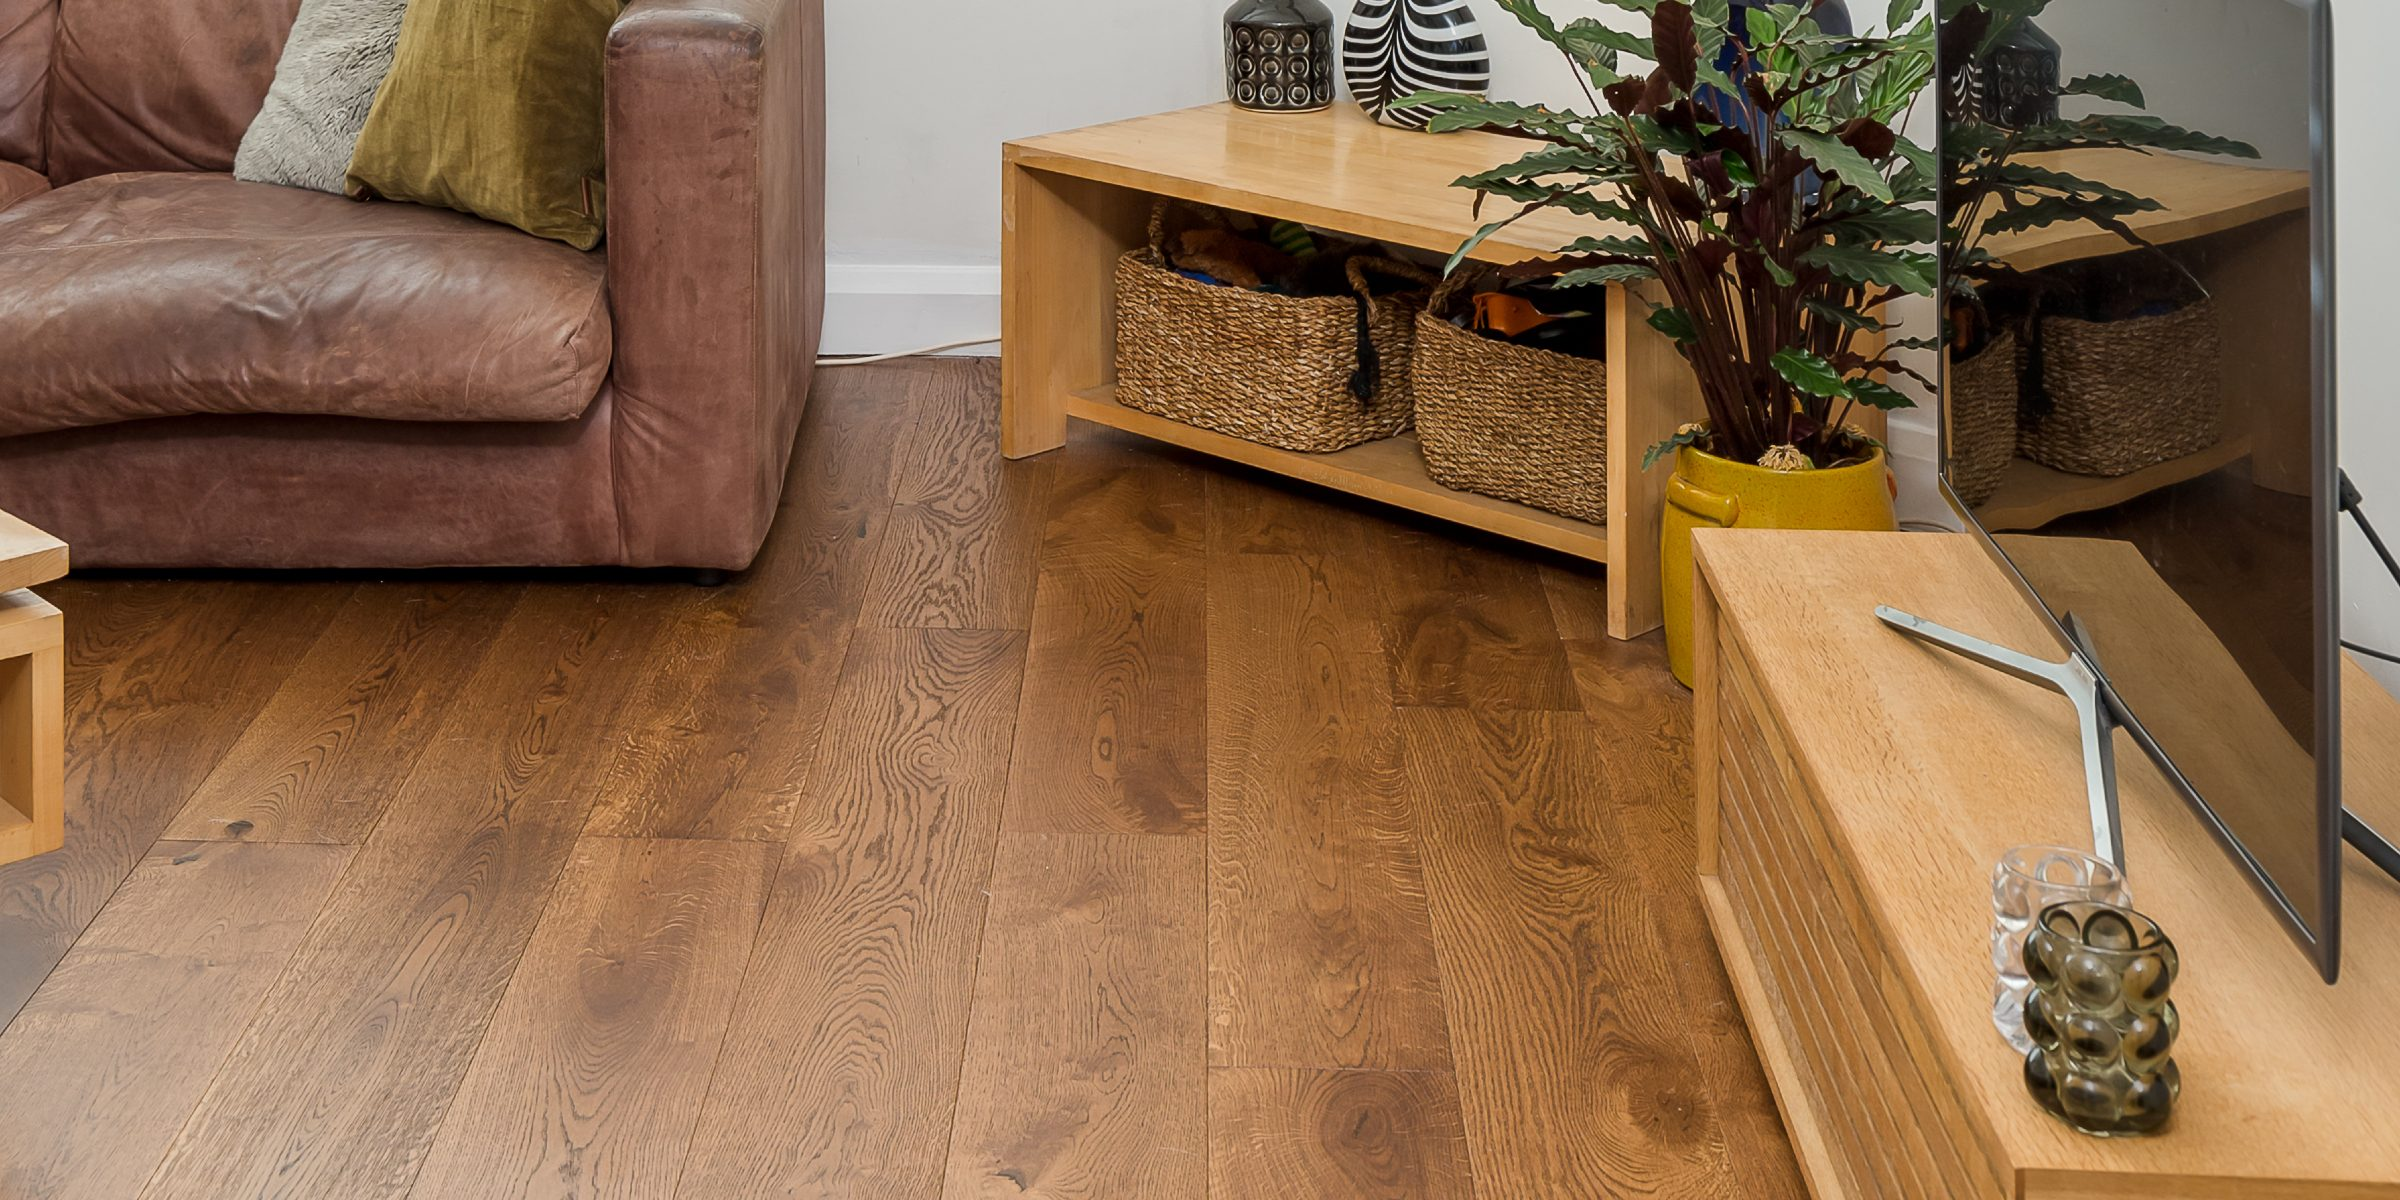 V4's Home Abinger wood floors in Brighton home